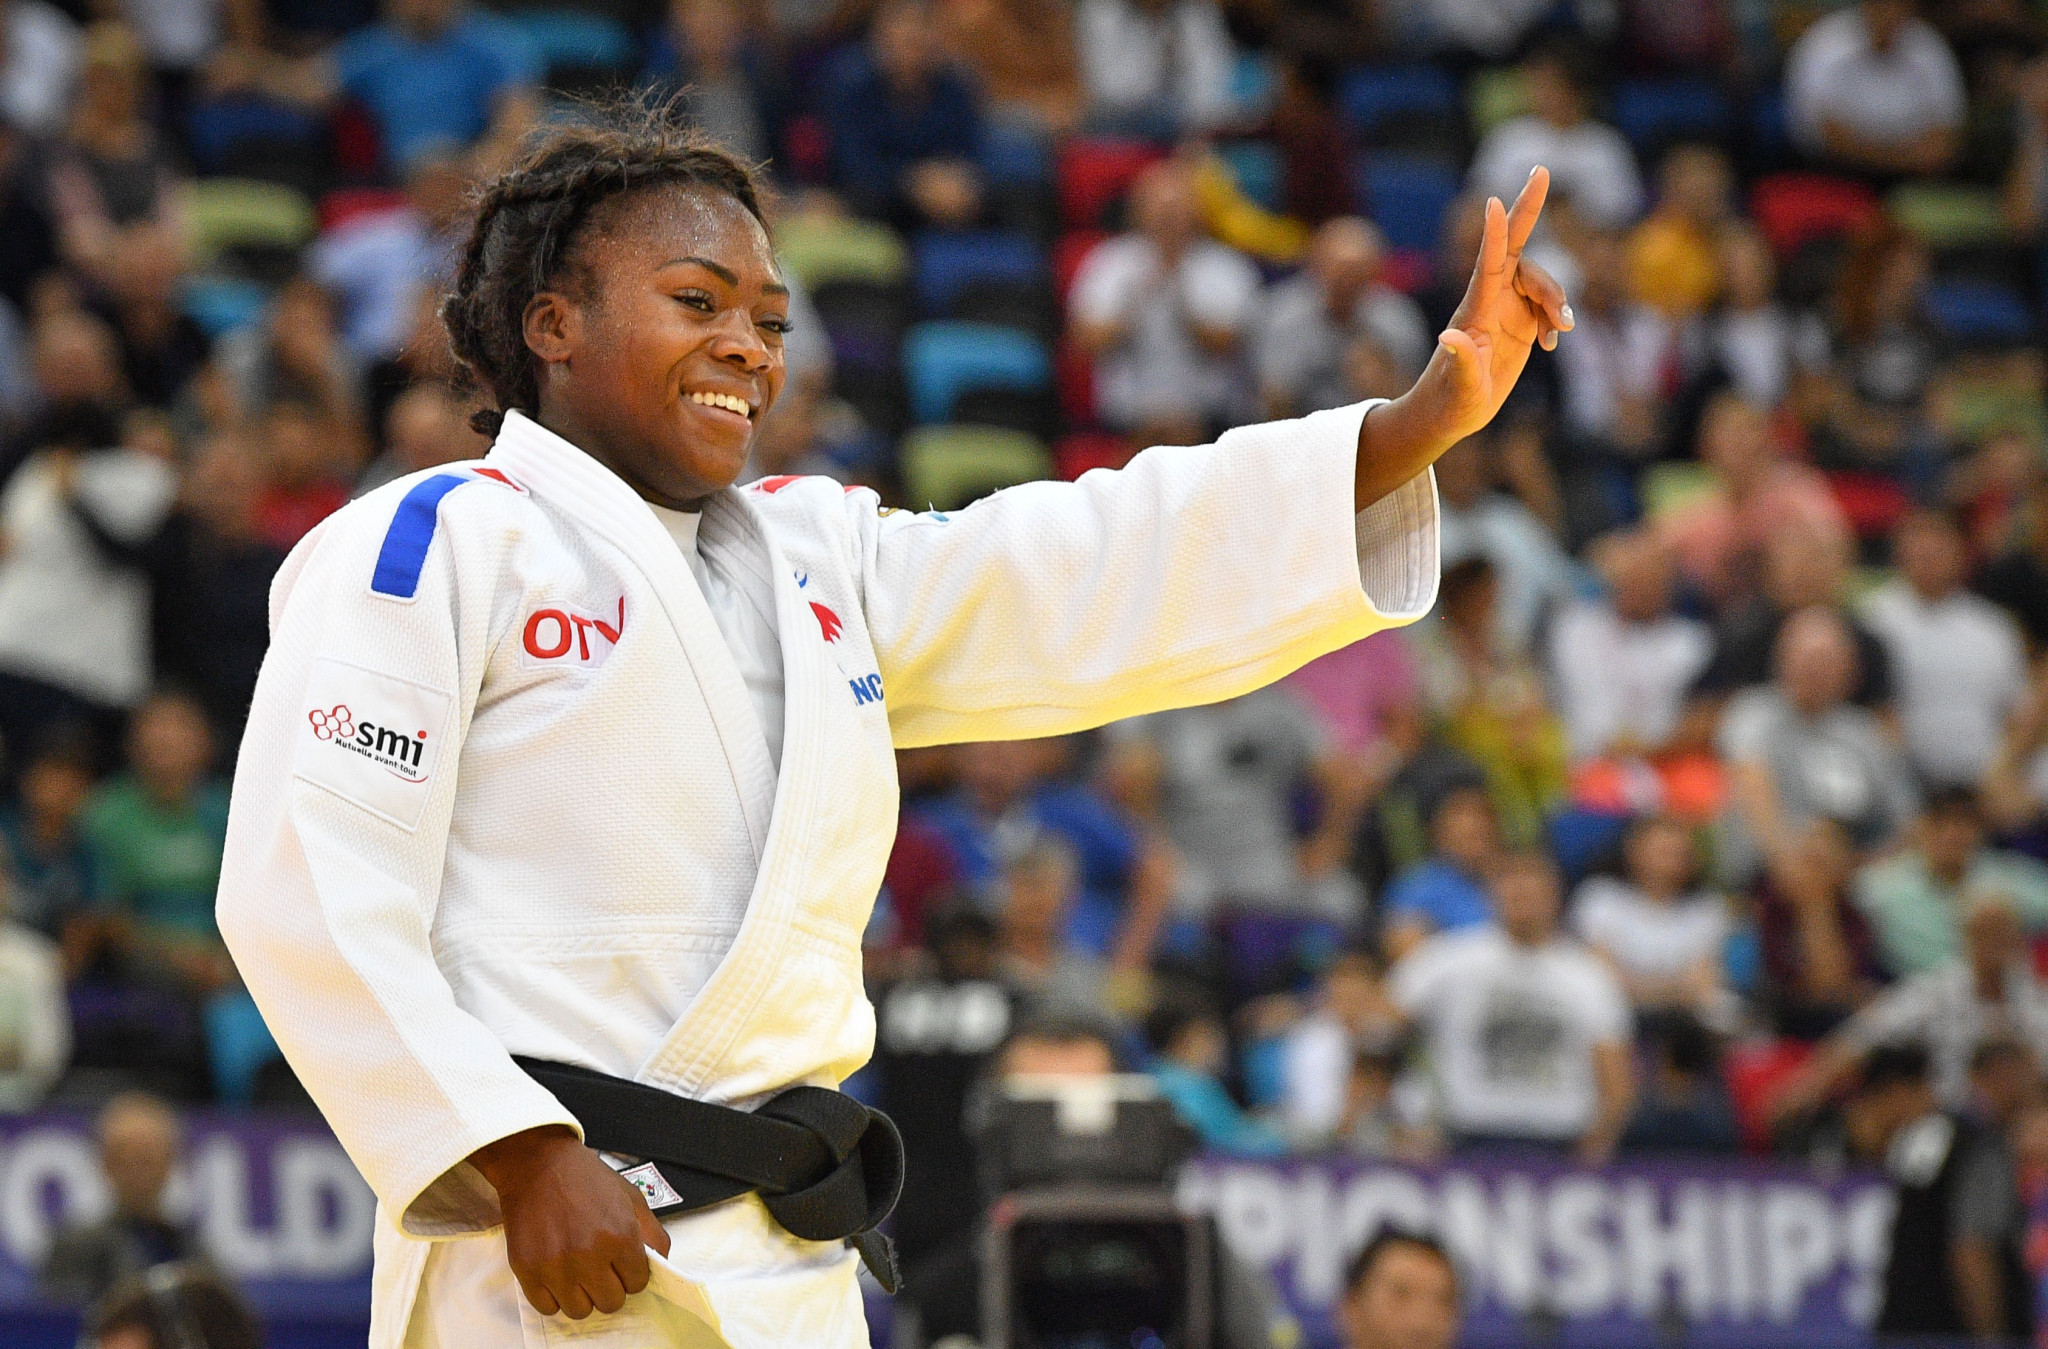 Clarisse Agbegnenou will be the biggest draw on home soil in Paris ©Getty Images